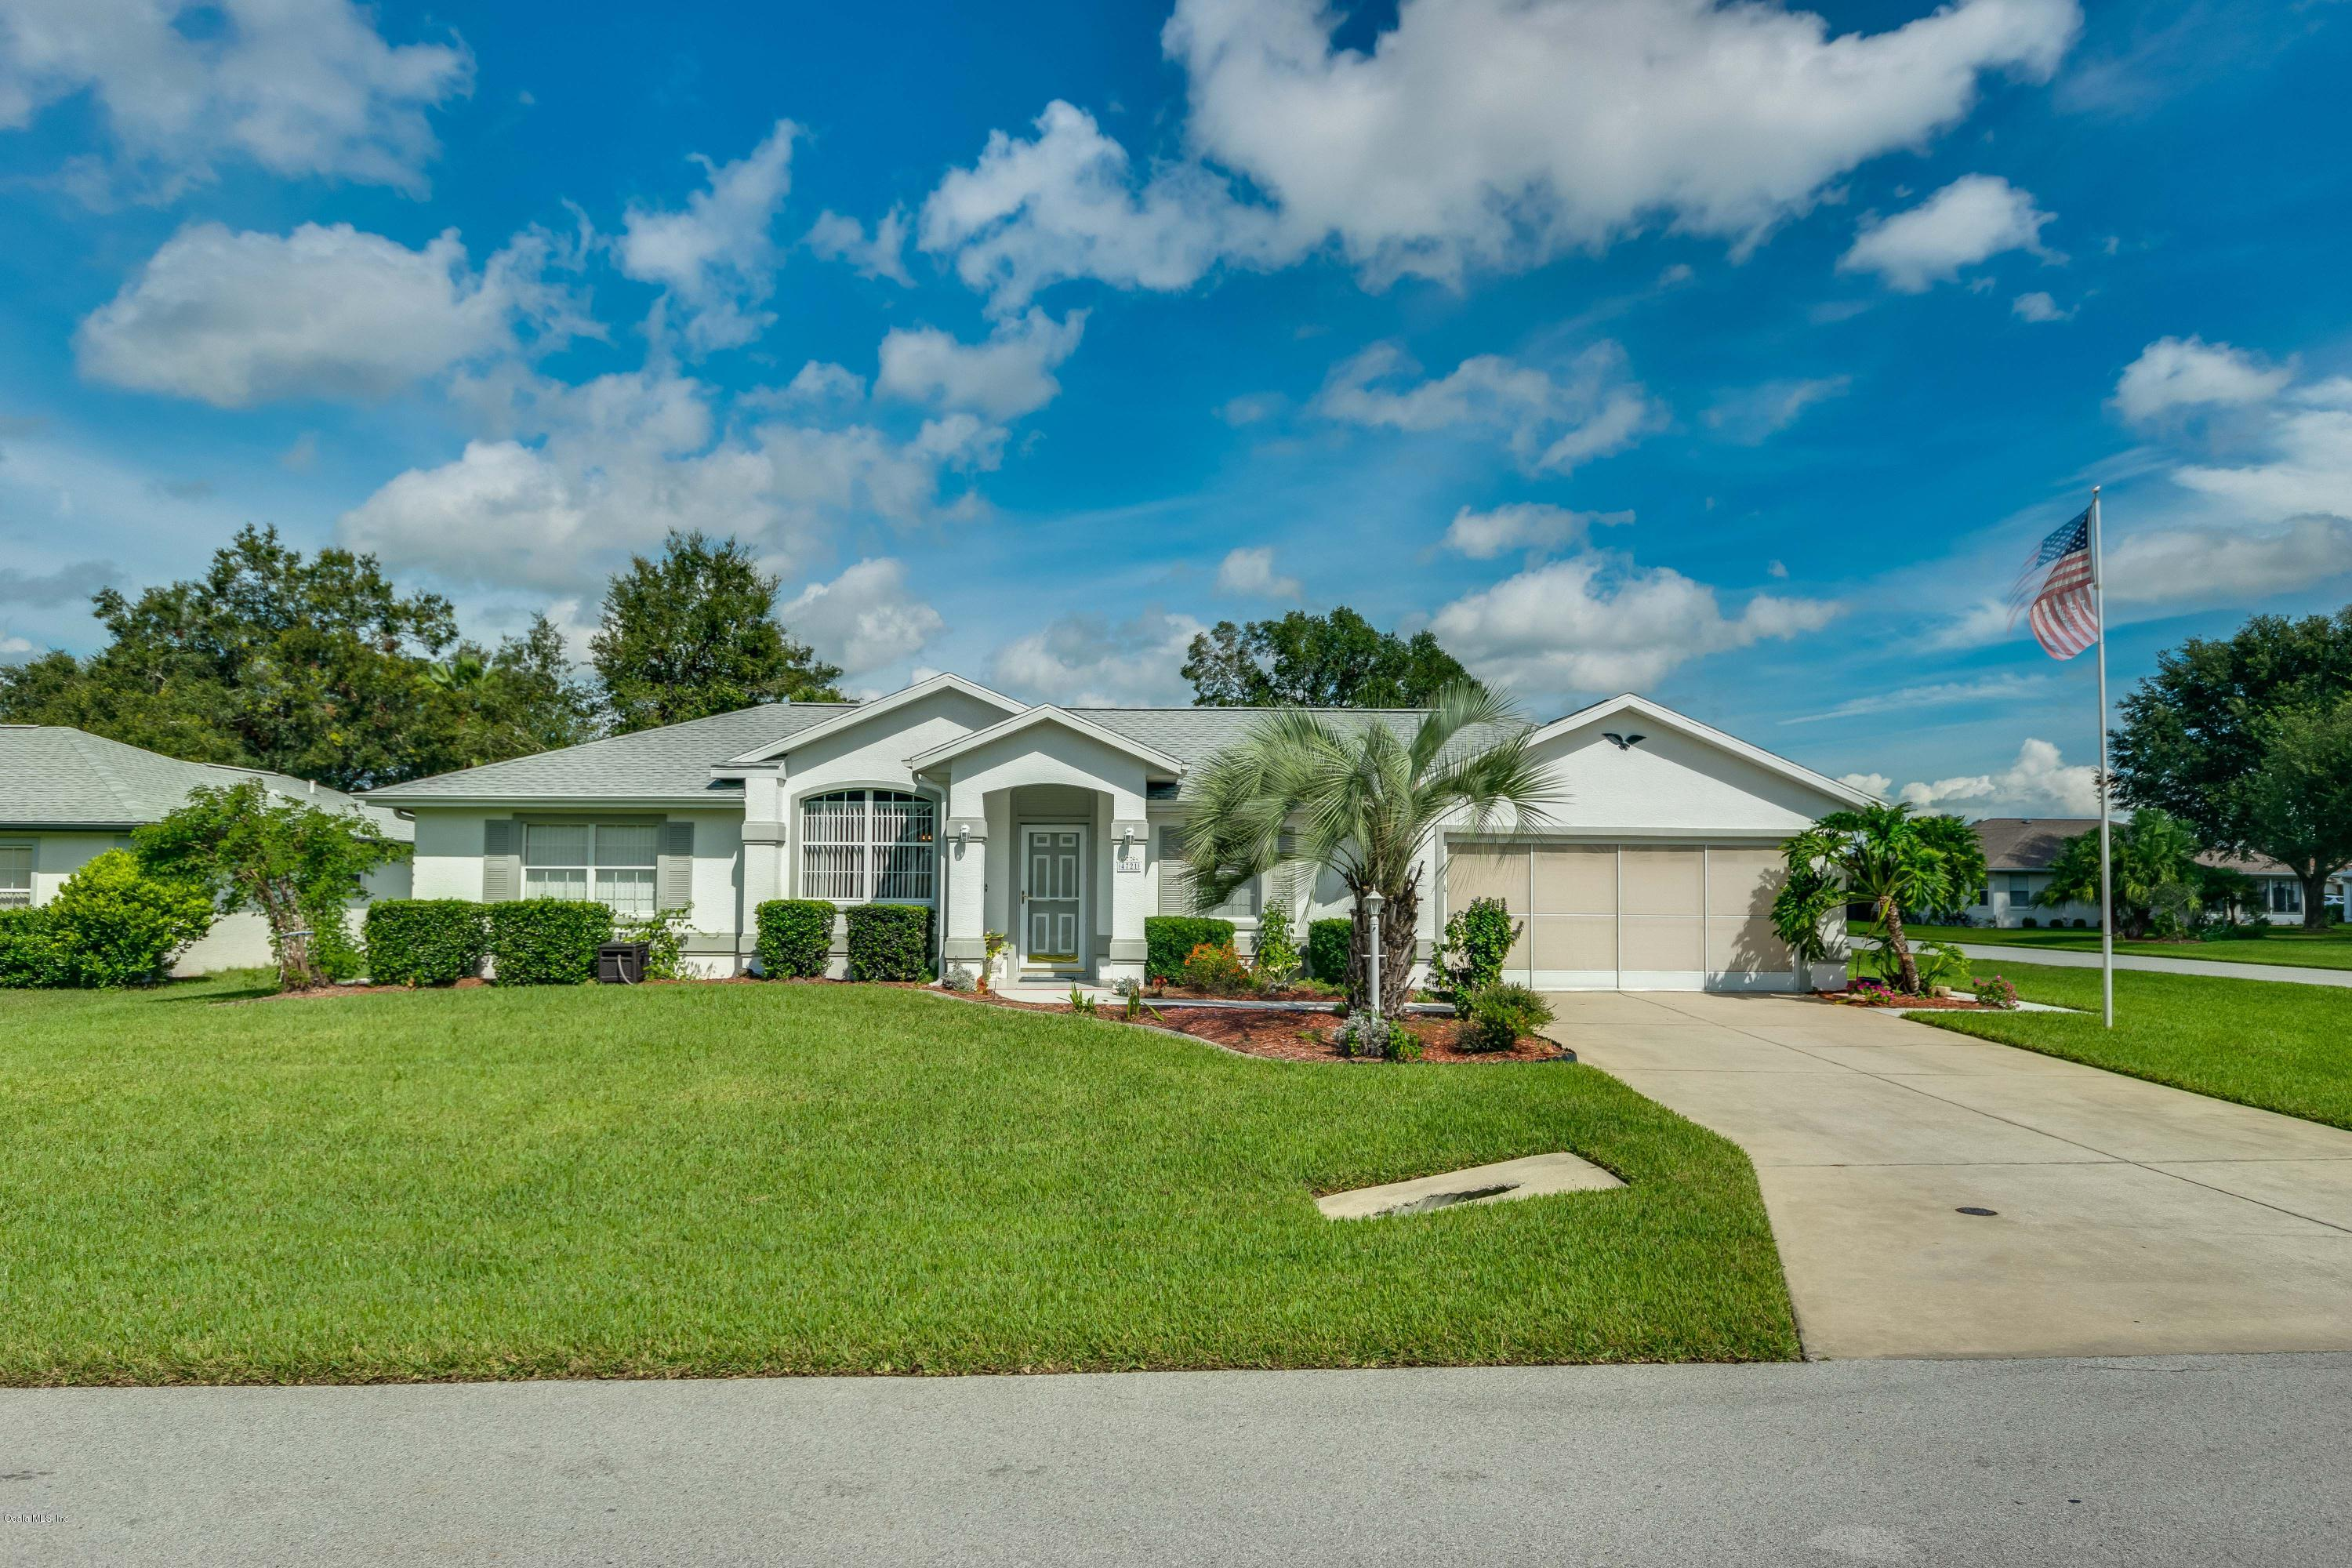 4721 NW 30TH PLACE, OCALA, FL 34482